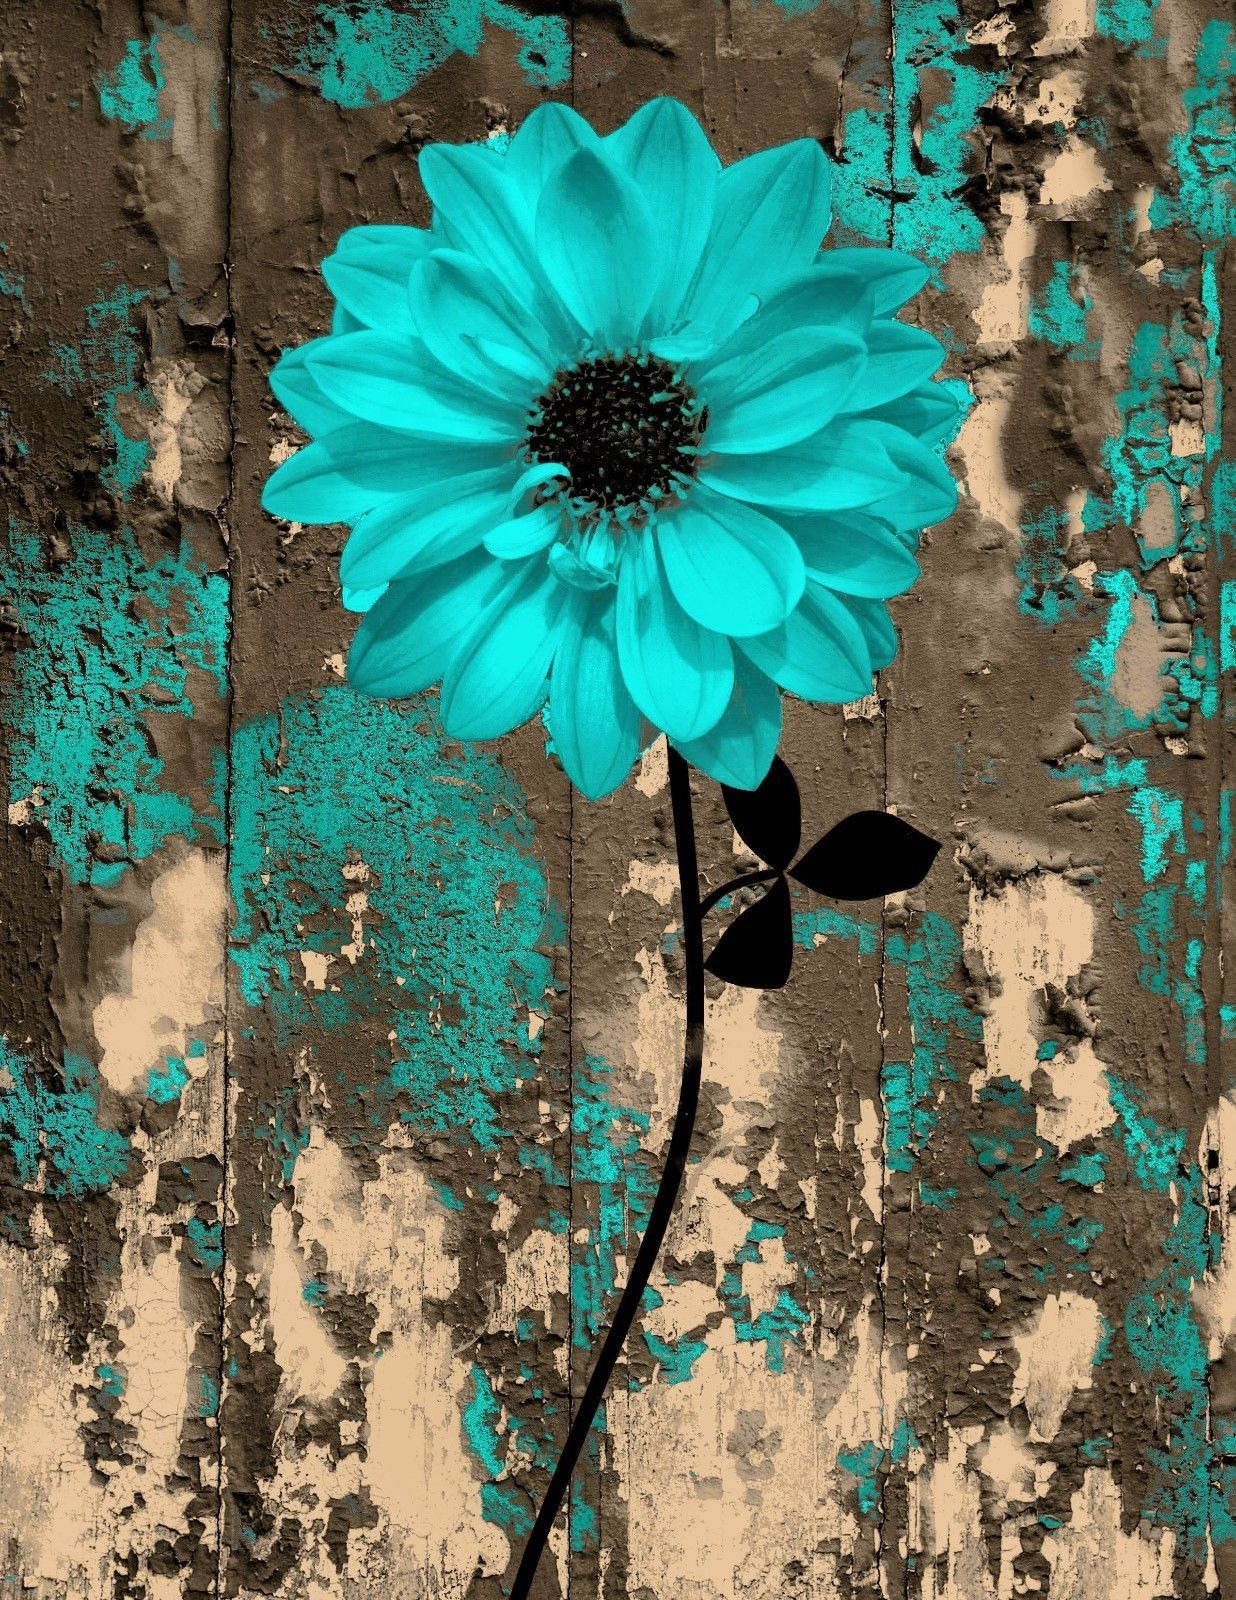 Brown and Turquoise Bathroom Decor Fresh Rustic Teal Brown Floral Bedroom Bathroom Wall Art Home